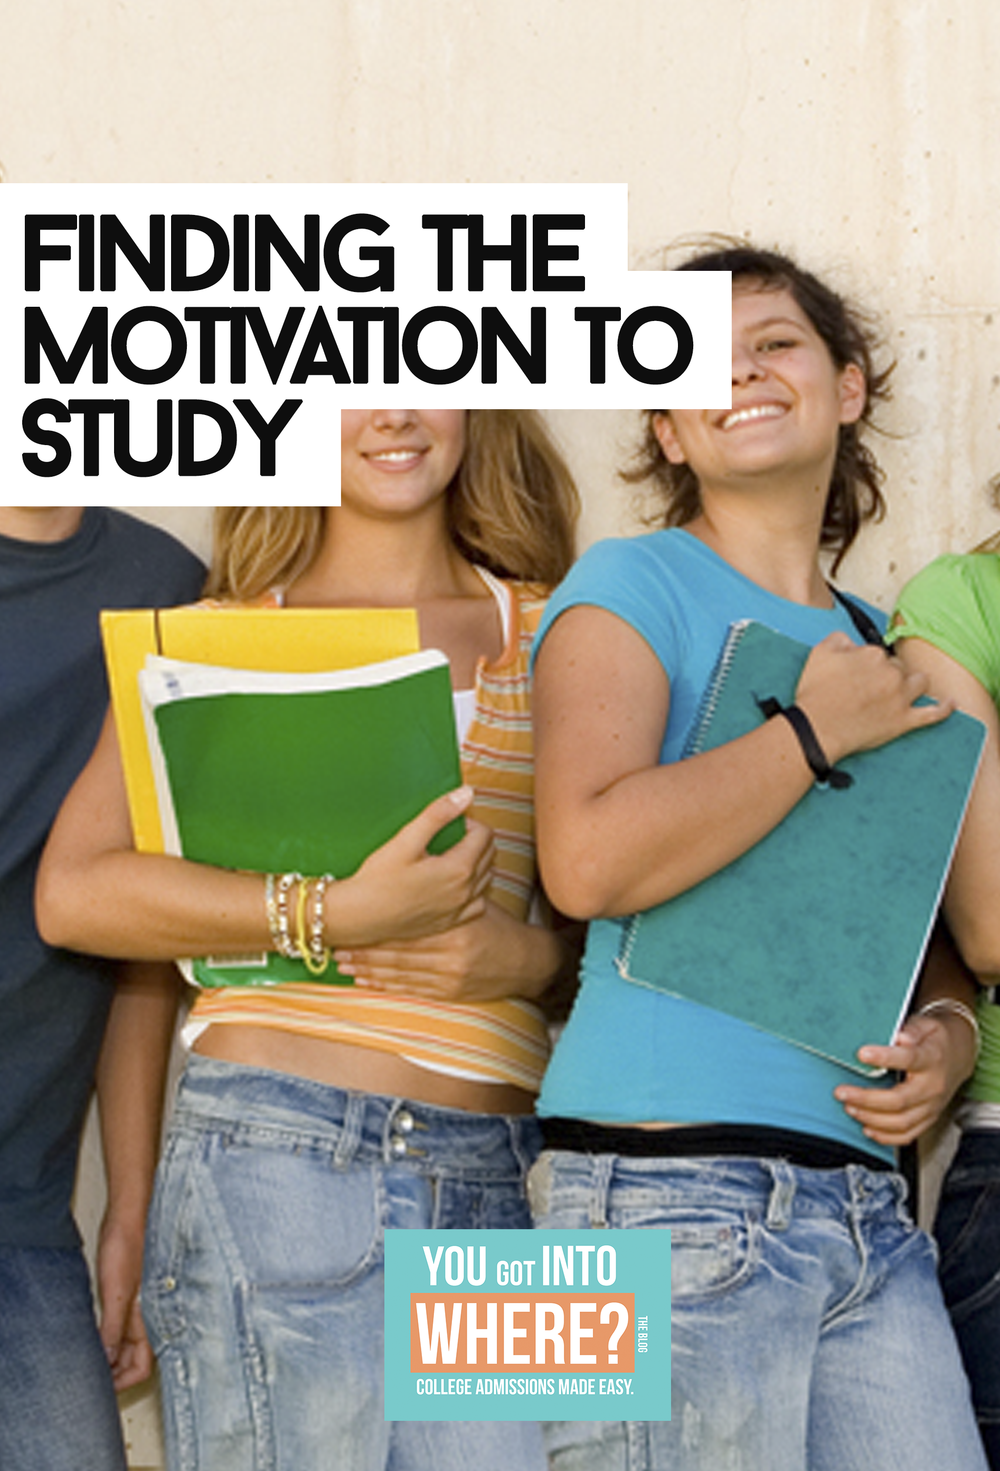 find-the-movitvation-to-study.png